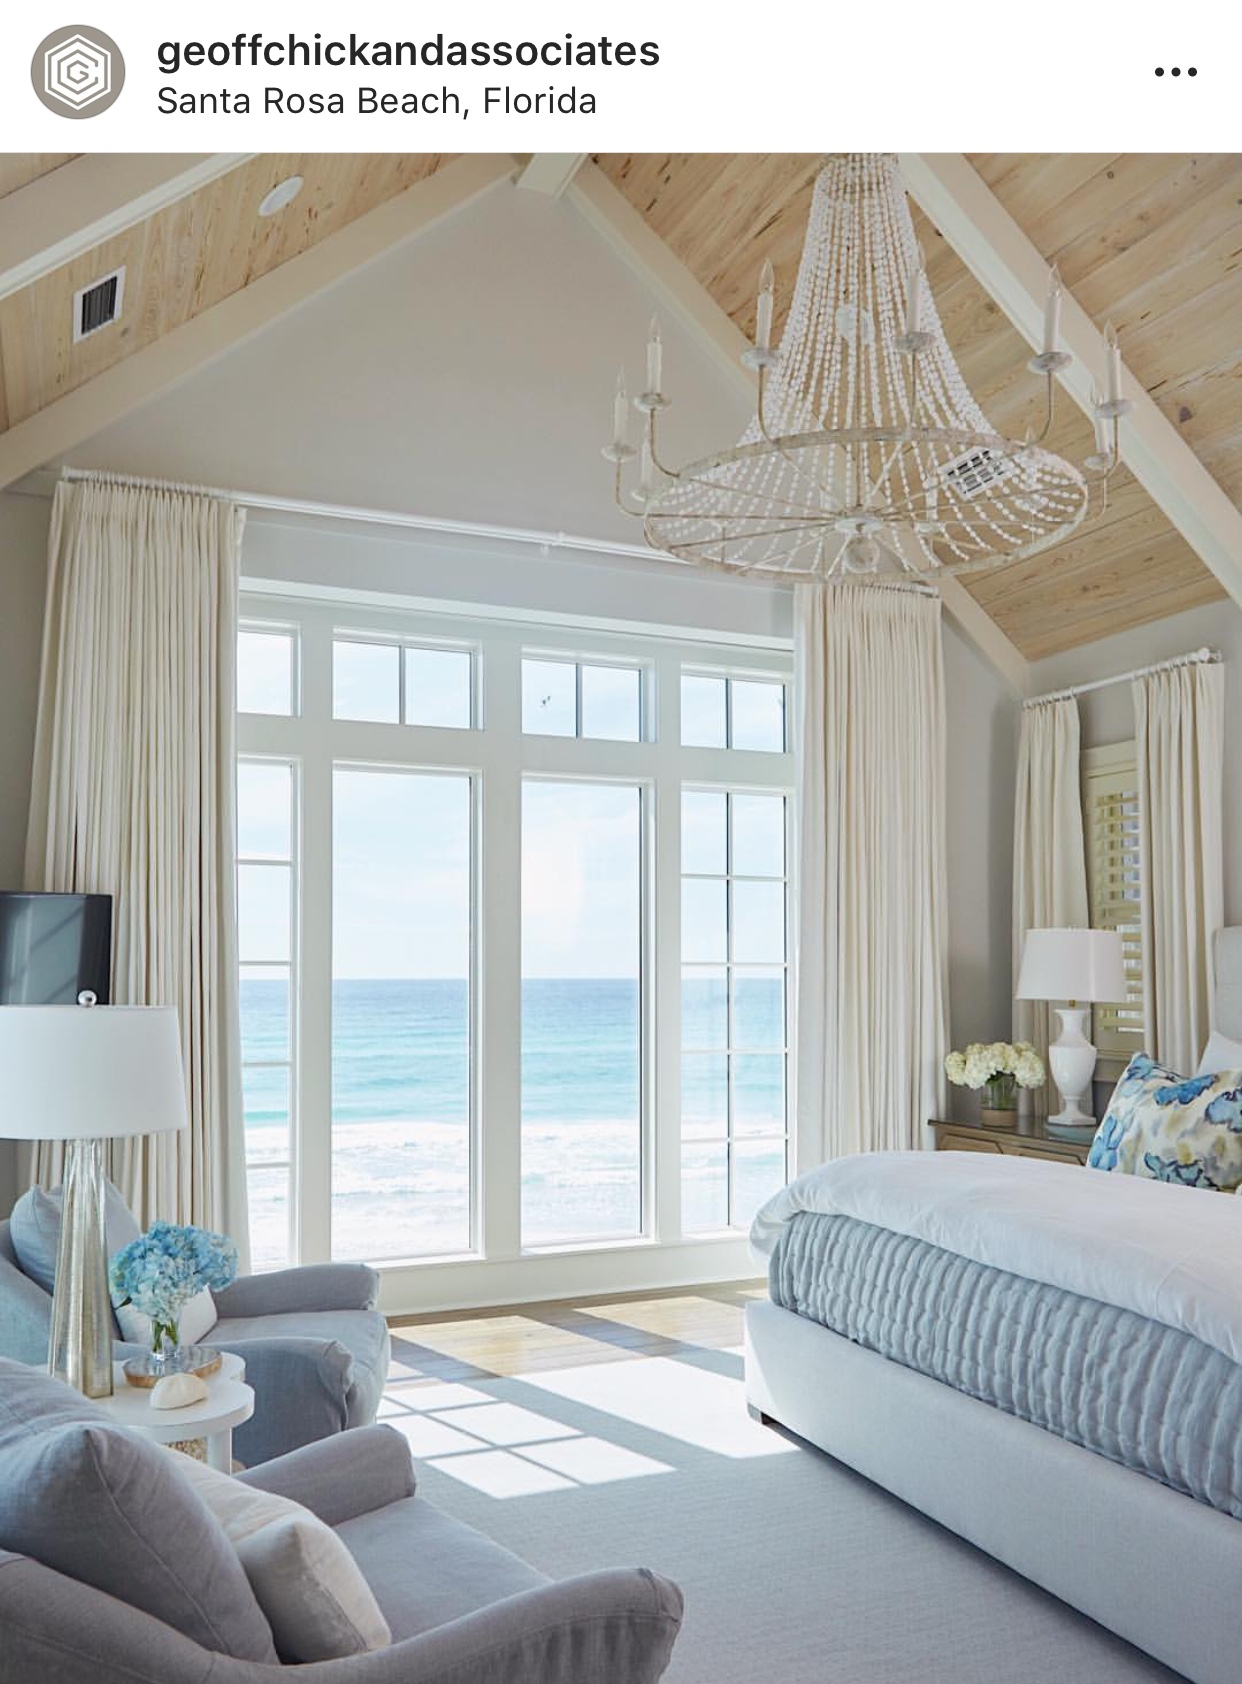 Coastal Interiors Master Bedroom with Vaulted Natural Wood Ceilings and White Beams